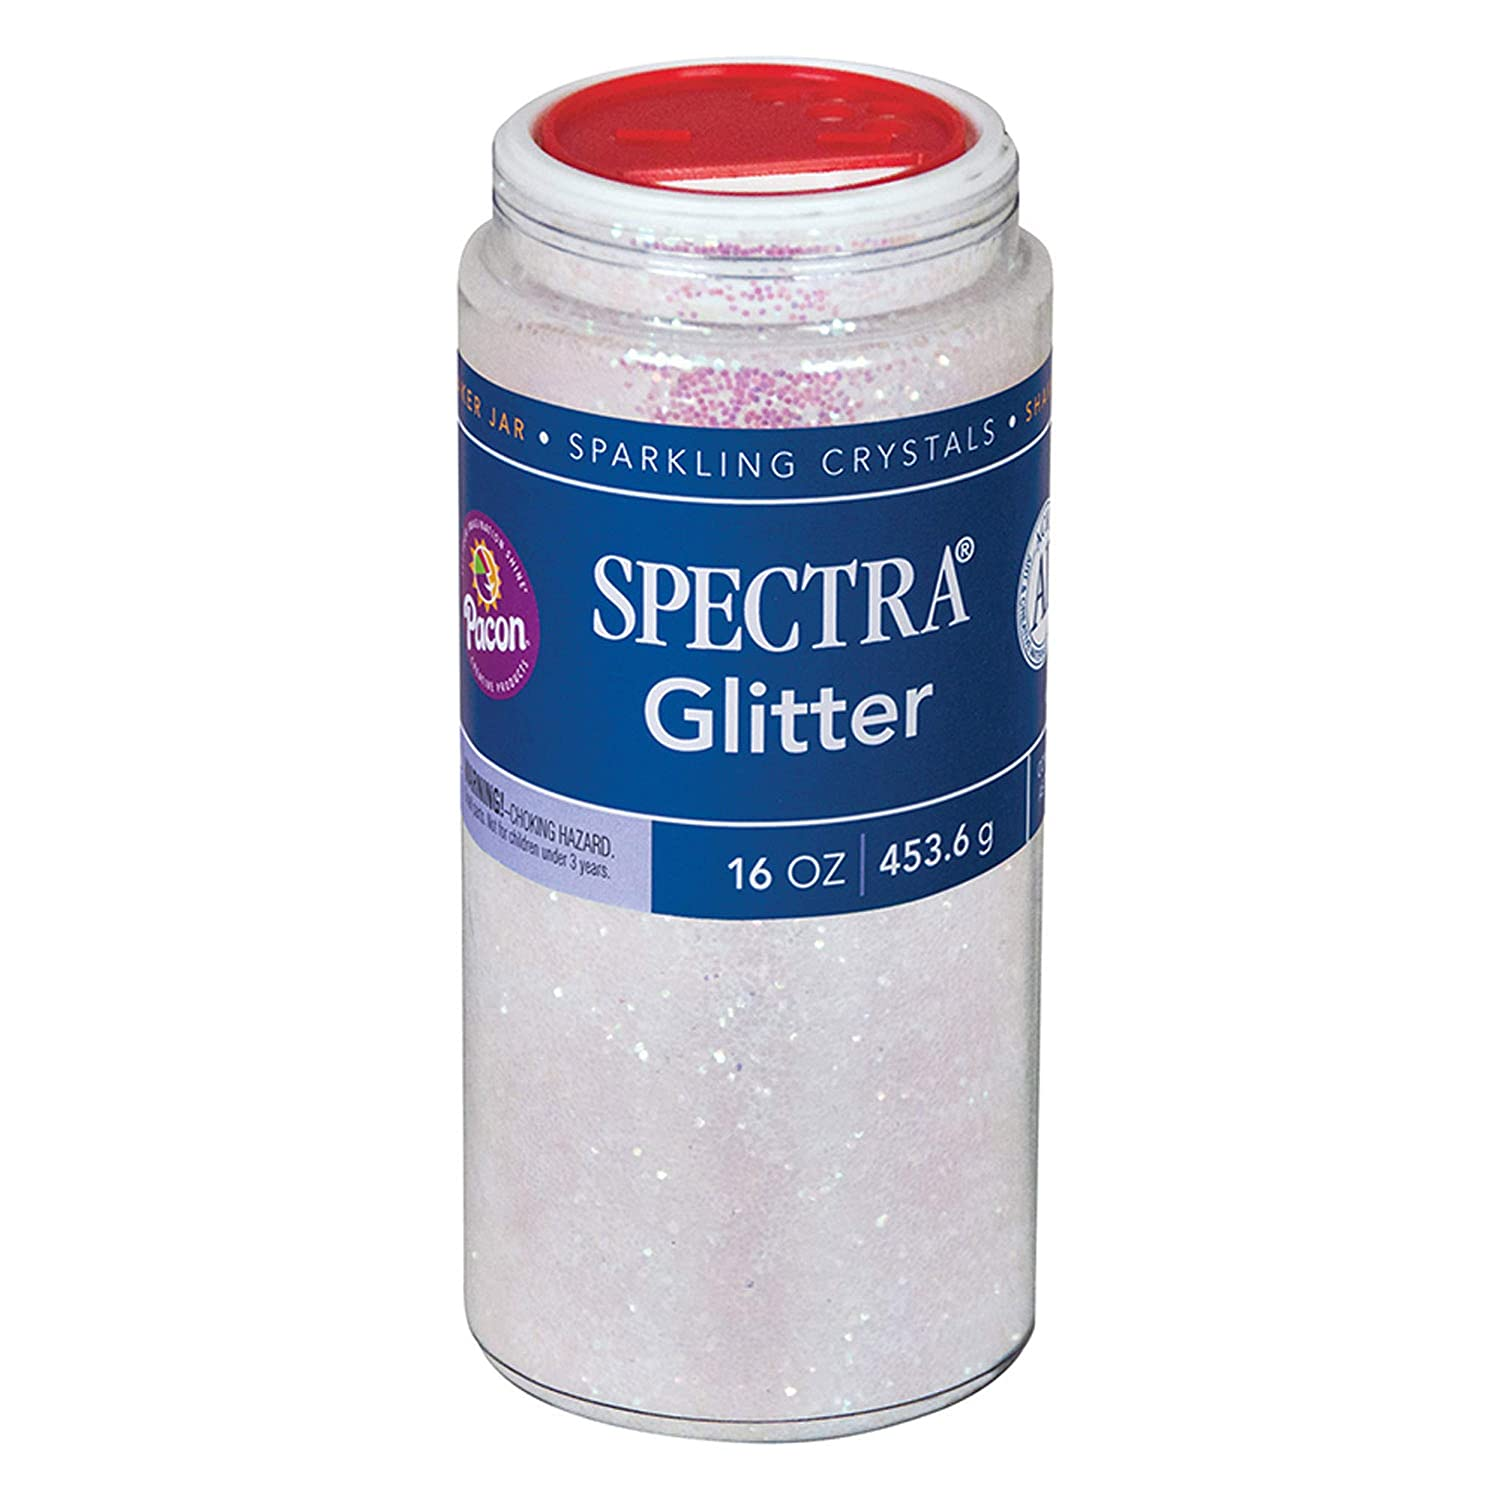 New Free Ship 1 Pound Spectra Glitter Iridescent